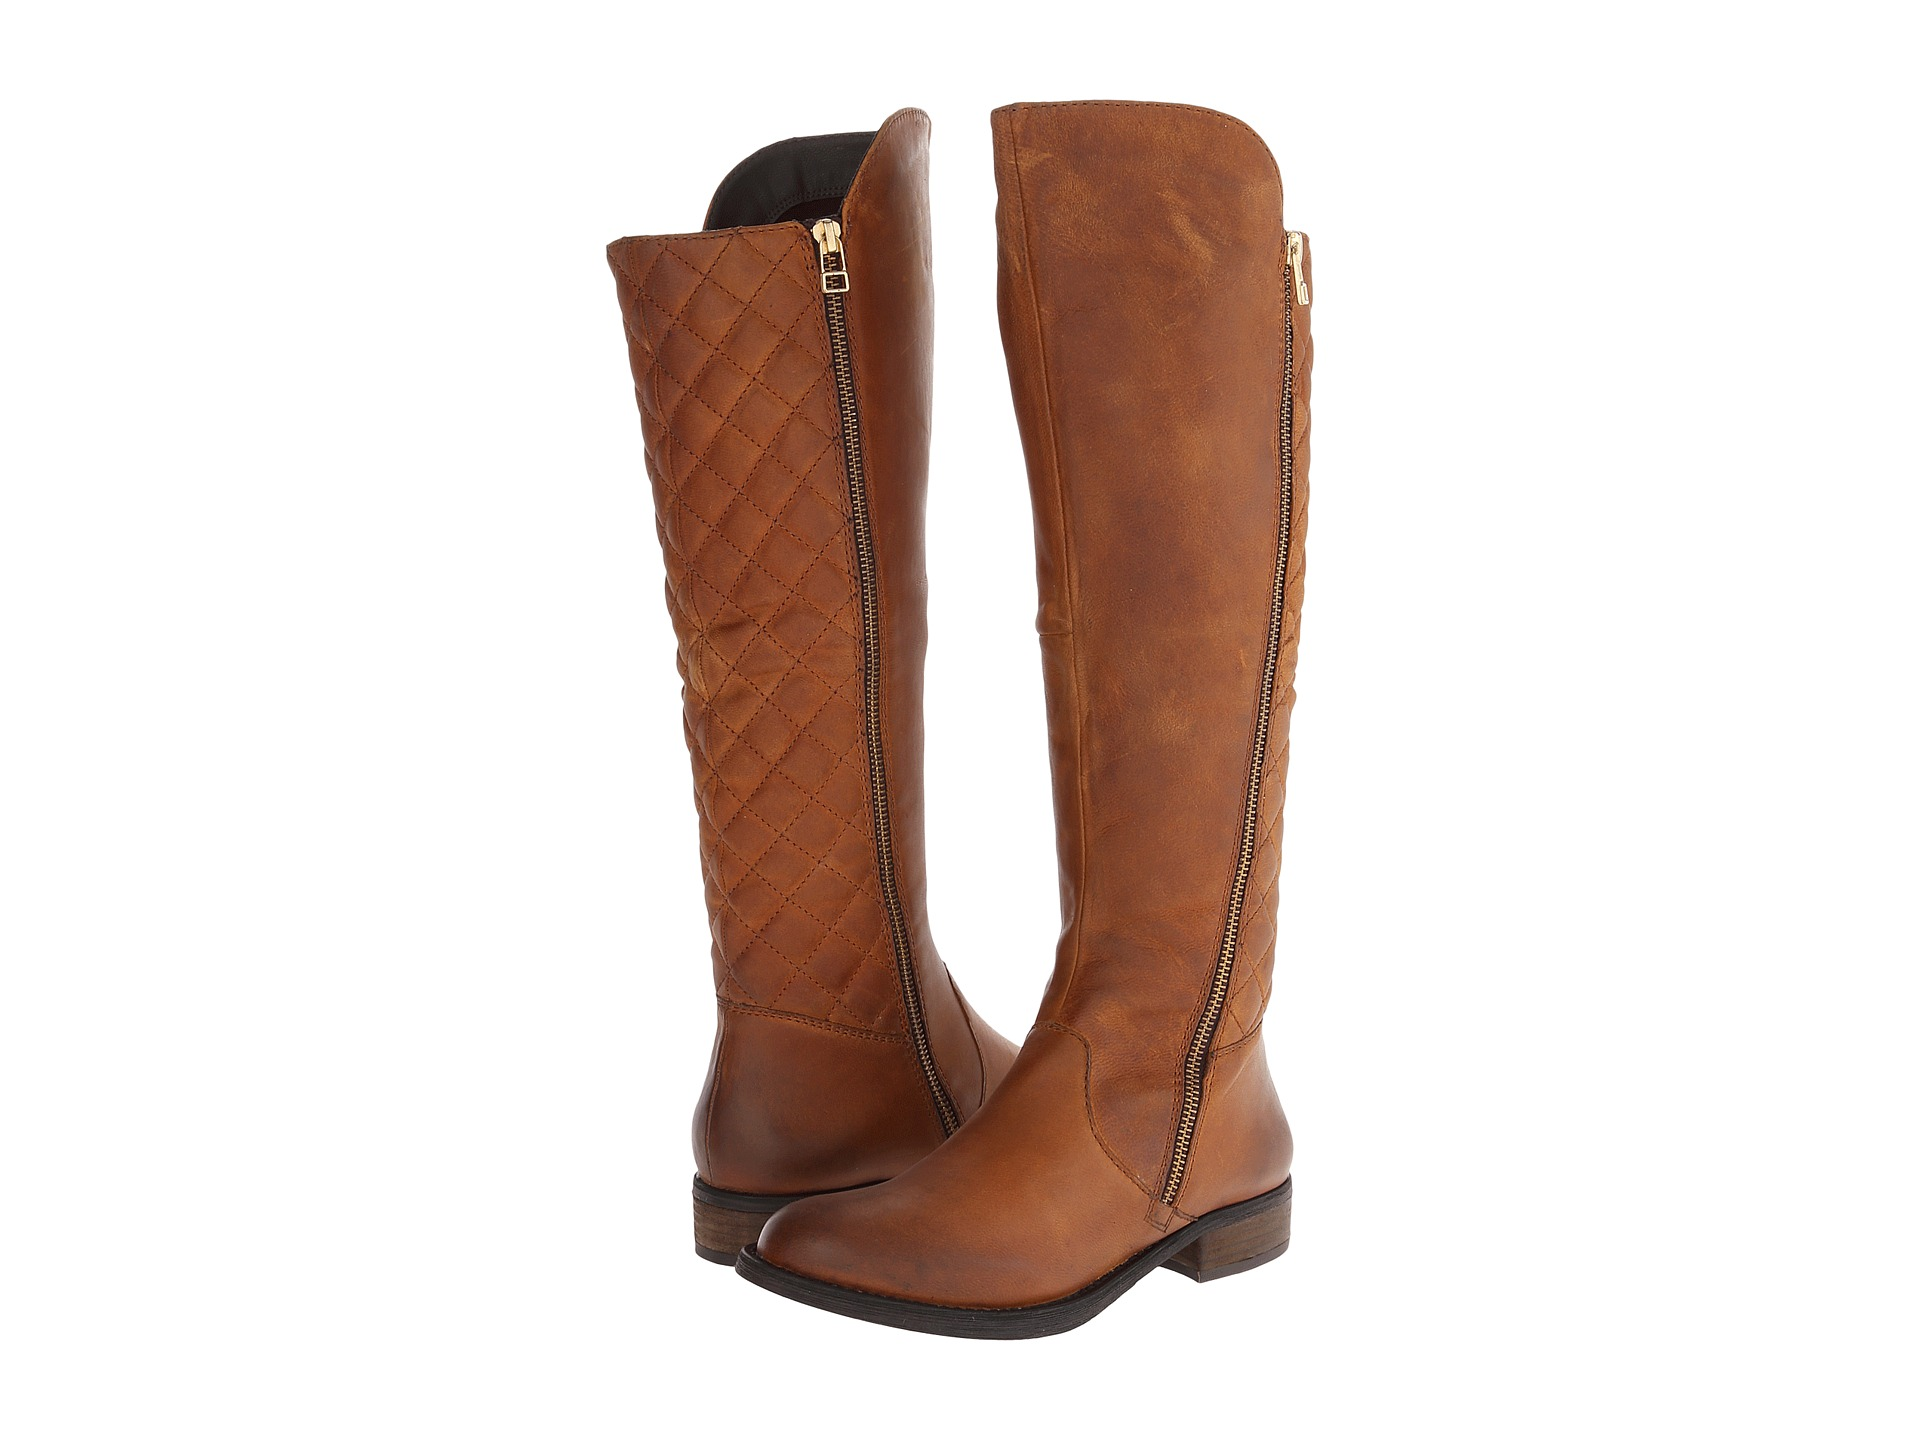 Gallery For gt Steve Madden Boots